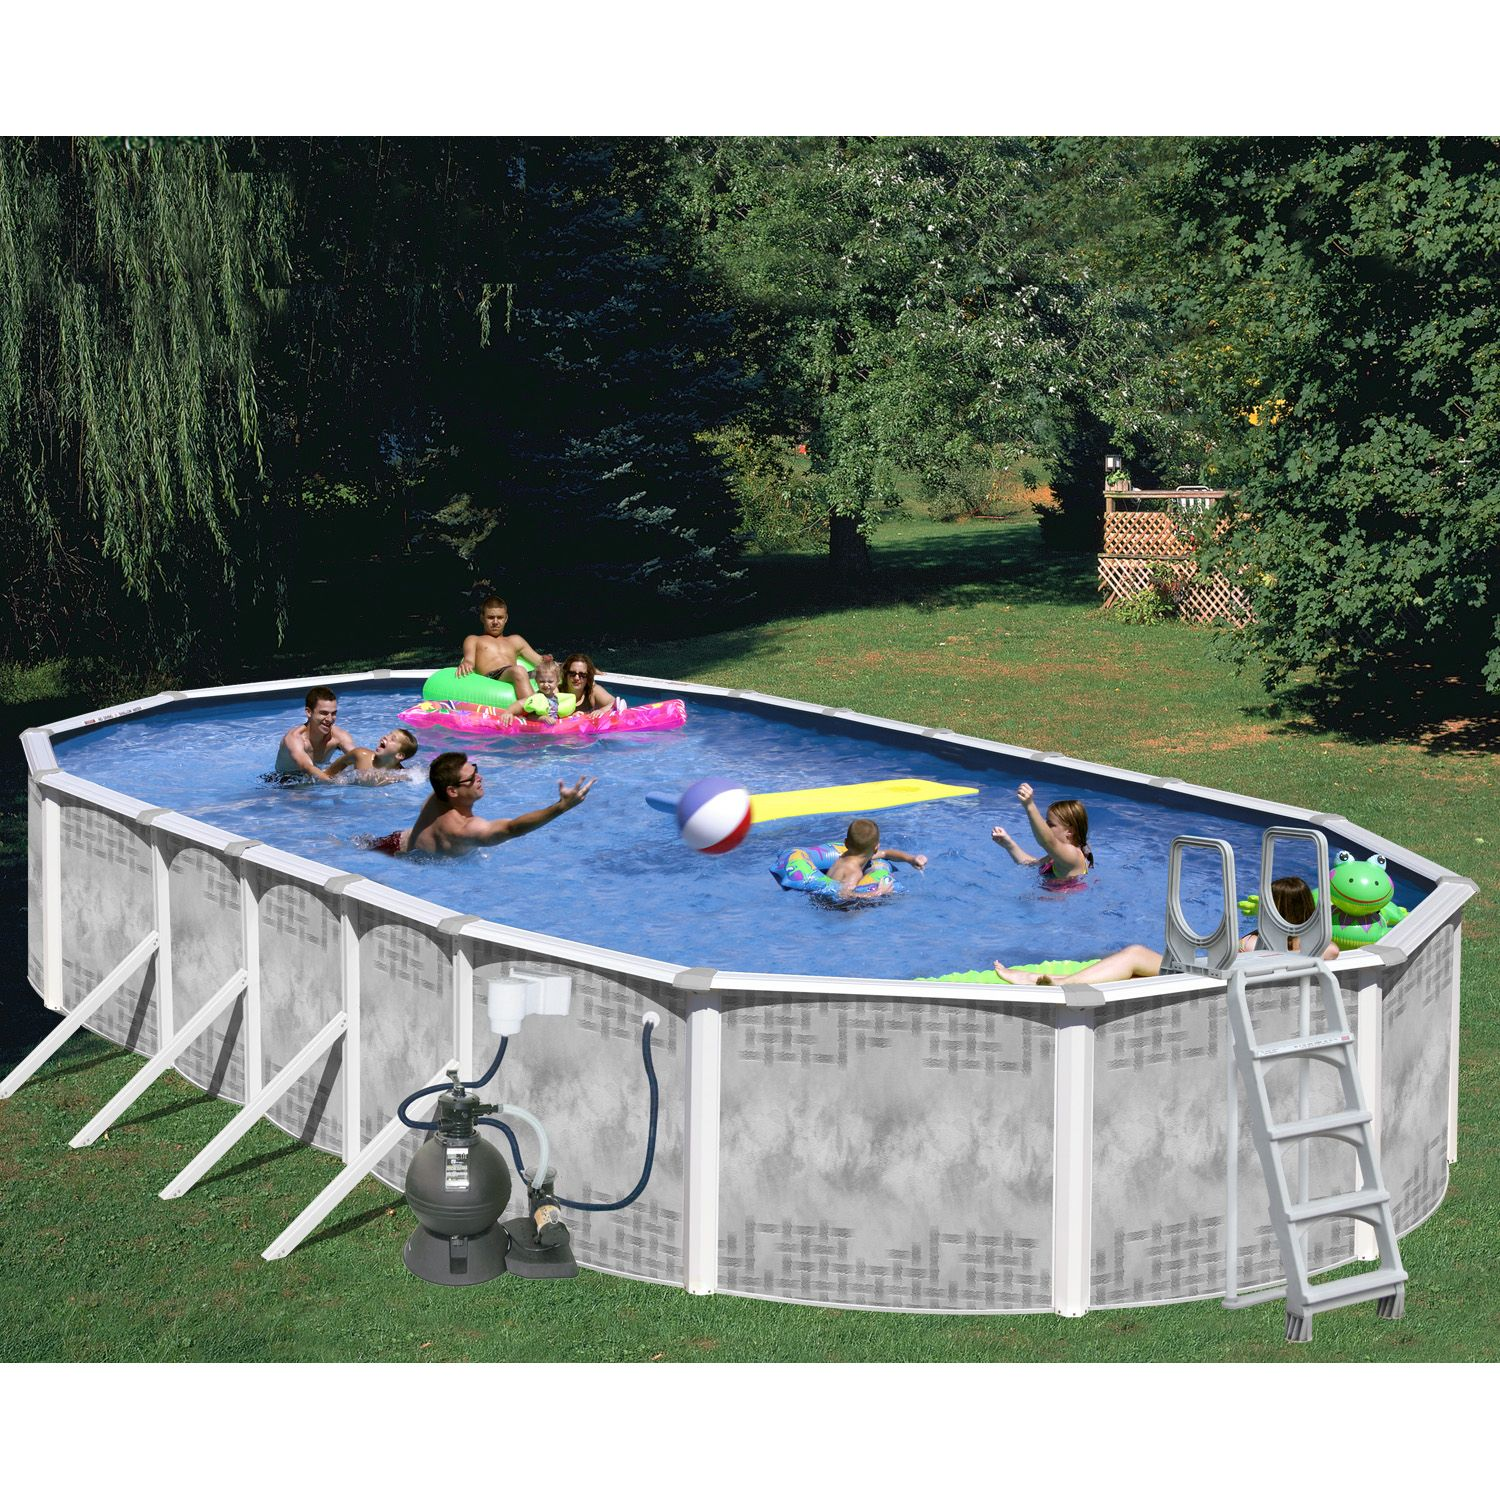 45ft x 18ft x 52in Heritage Diamond Oval Pool